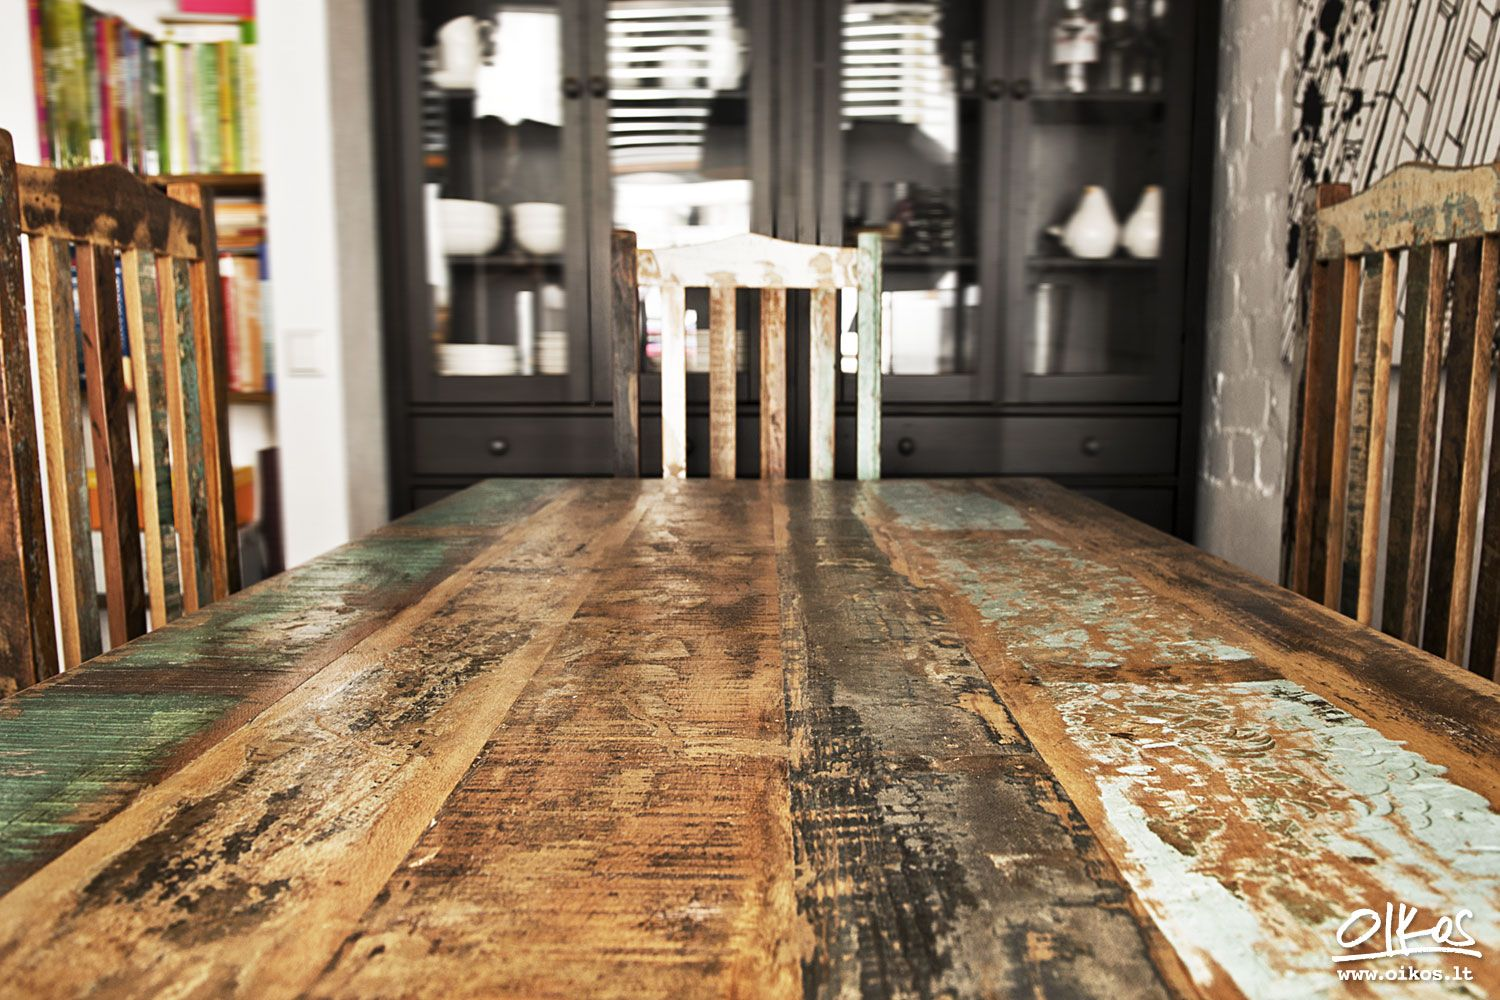 Reclaimed Wood Furniture From Crete Dining Table Kostas Reclaimed Wood Furniture Old Doors Reclaimed Wood